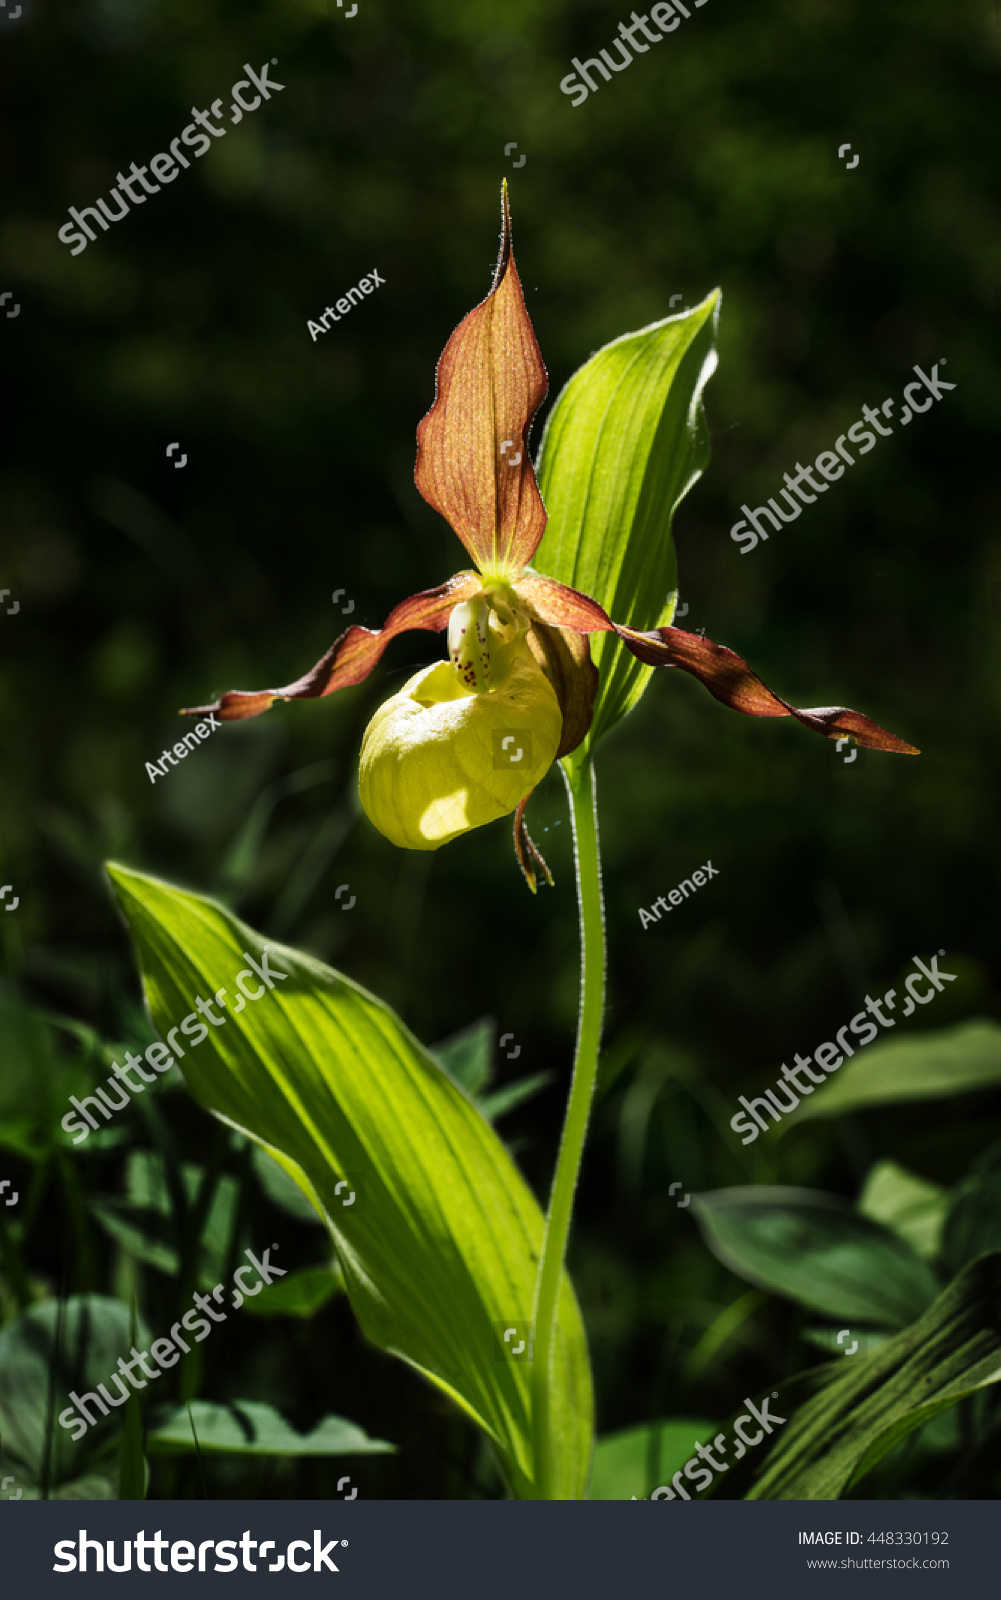 Ladys Slipper Orchid Flower Yellow With Red Petals Blooming Flower